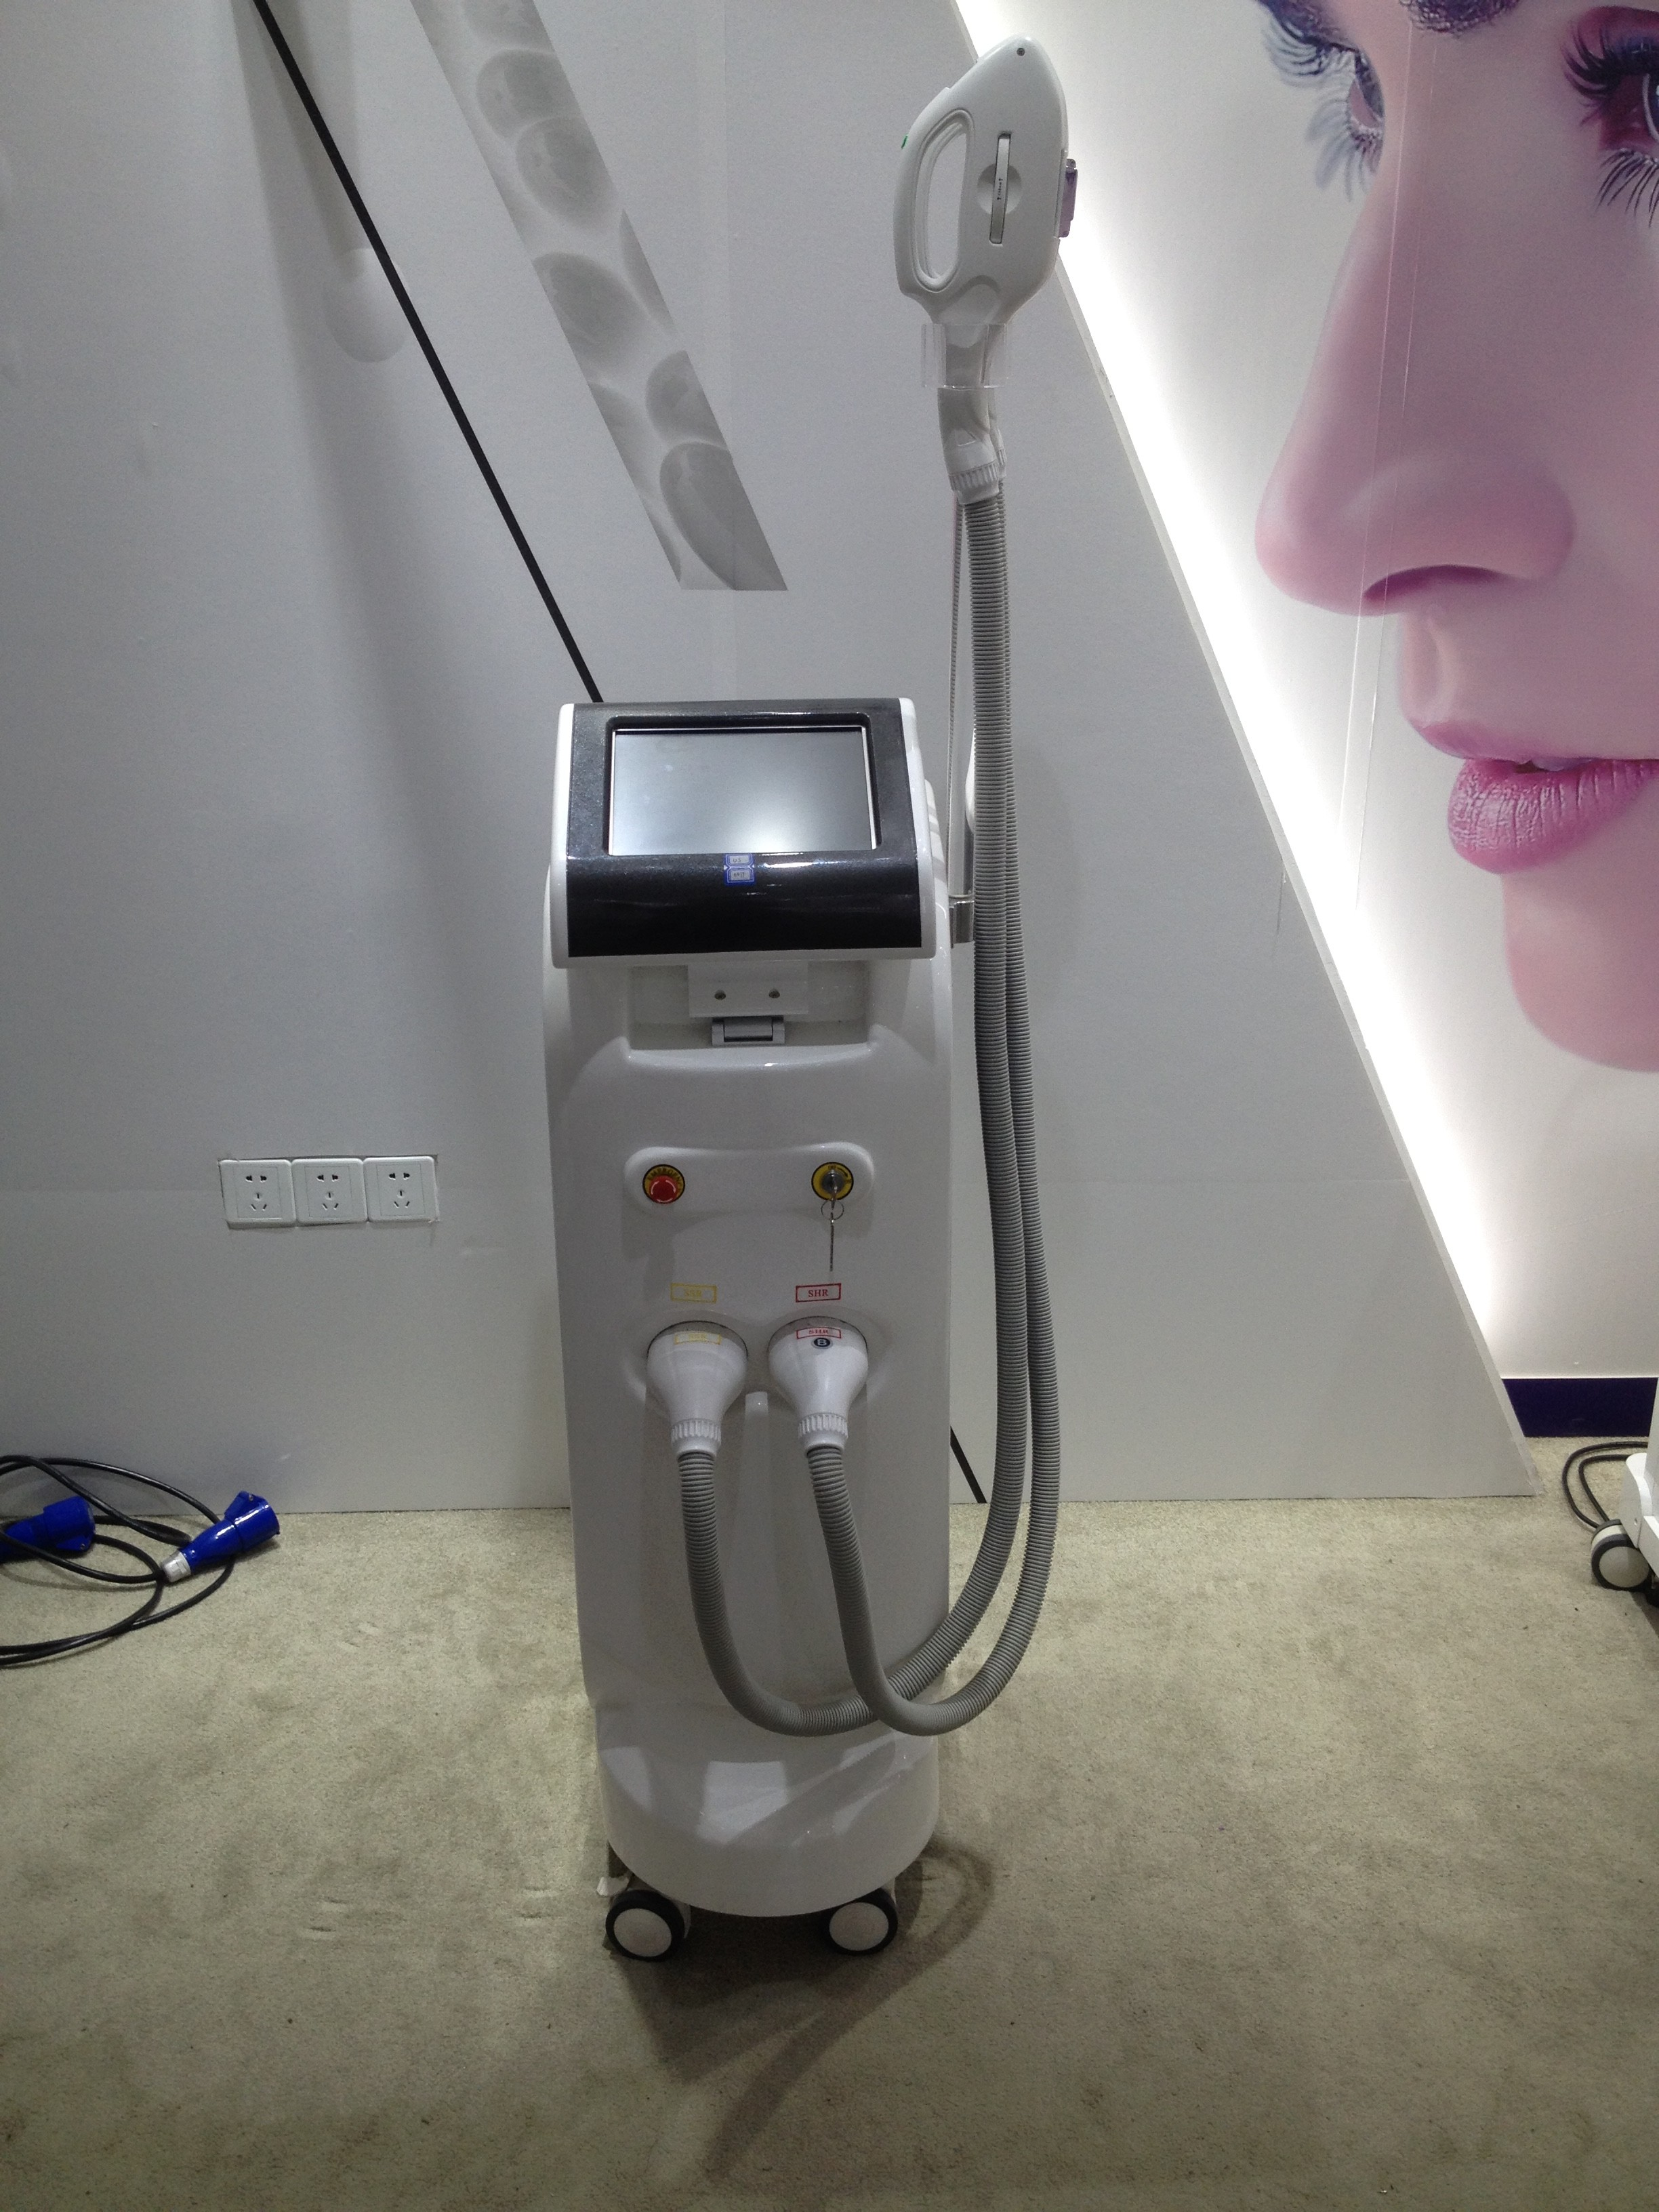 Shr 2 Handles IPL RF Beauty Equipment For Hair Removal And Facial Whitening